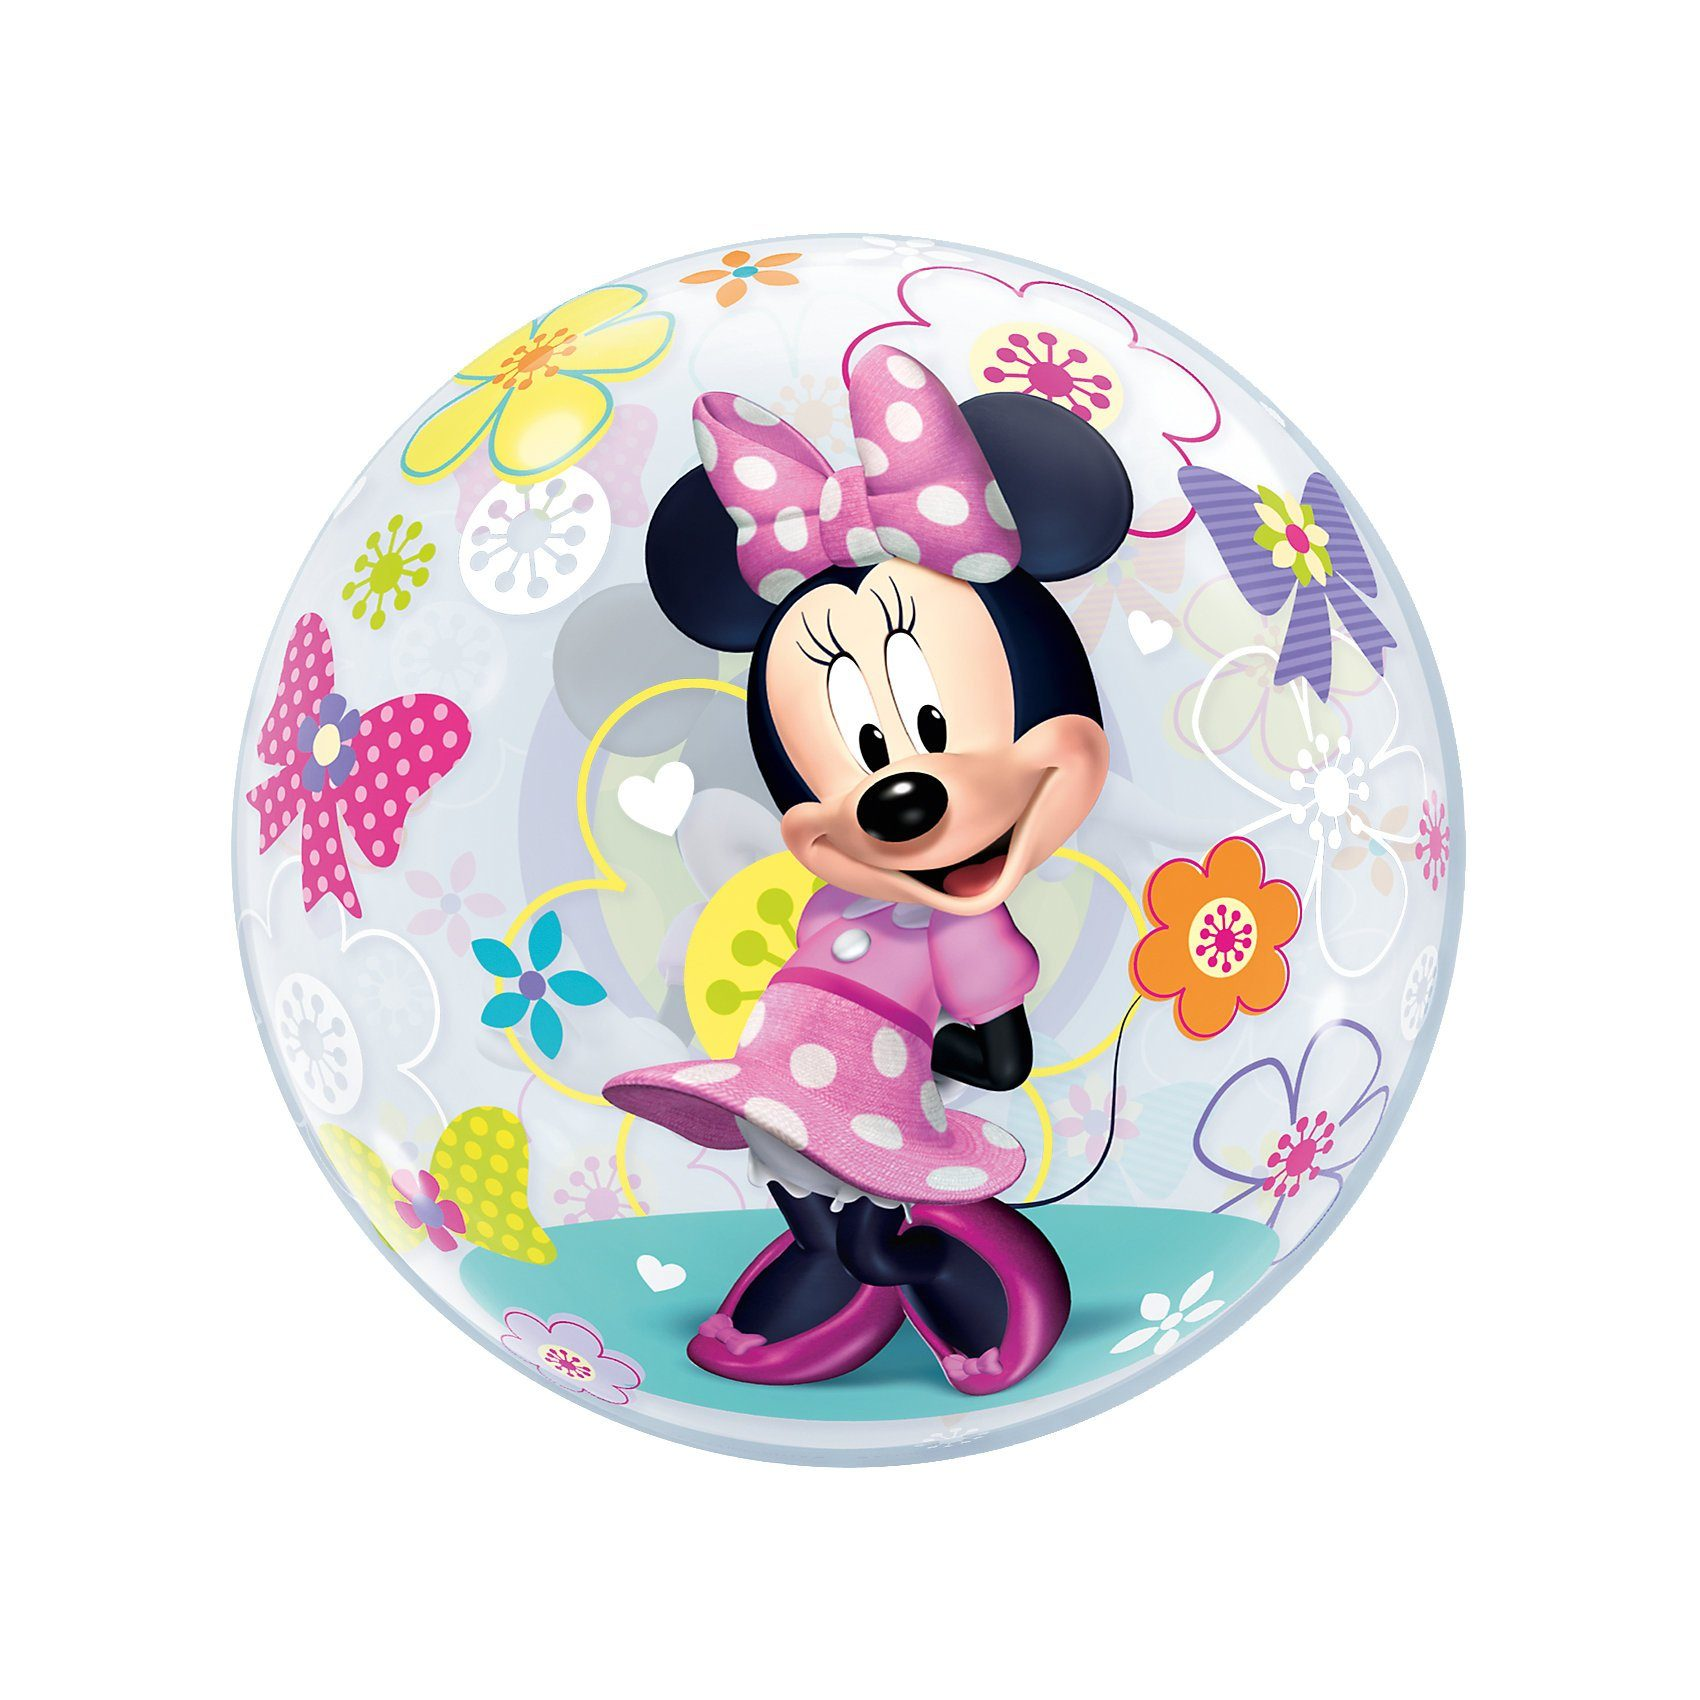 Qualatex Luftballon Bubble Balloon Minnie Mouse